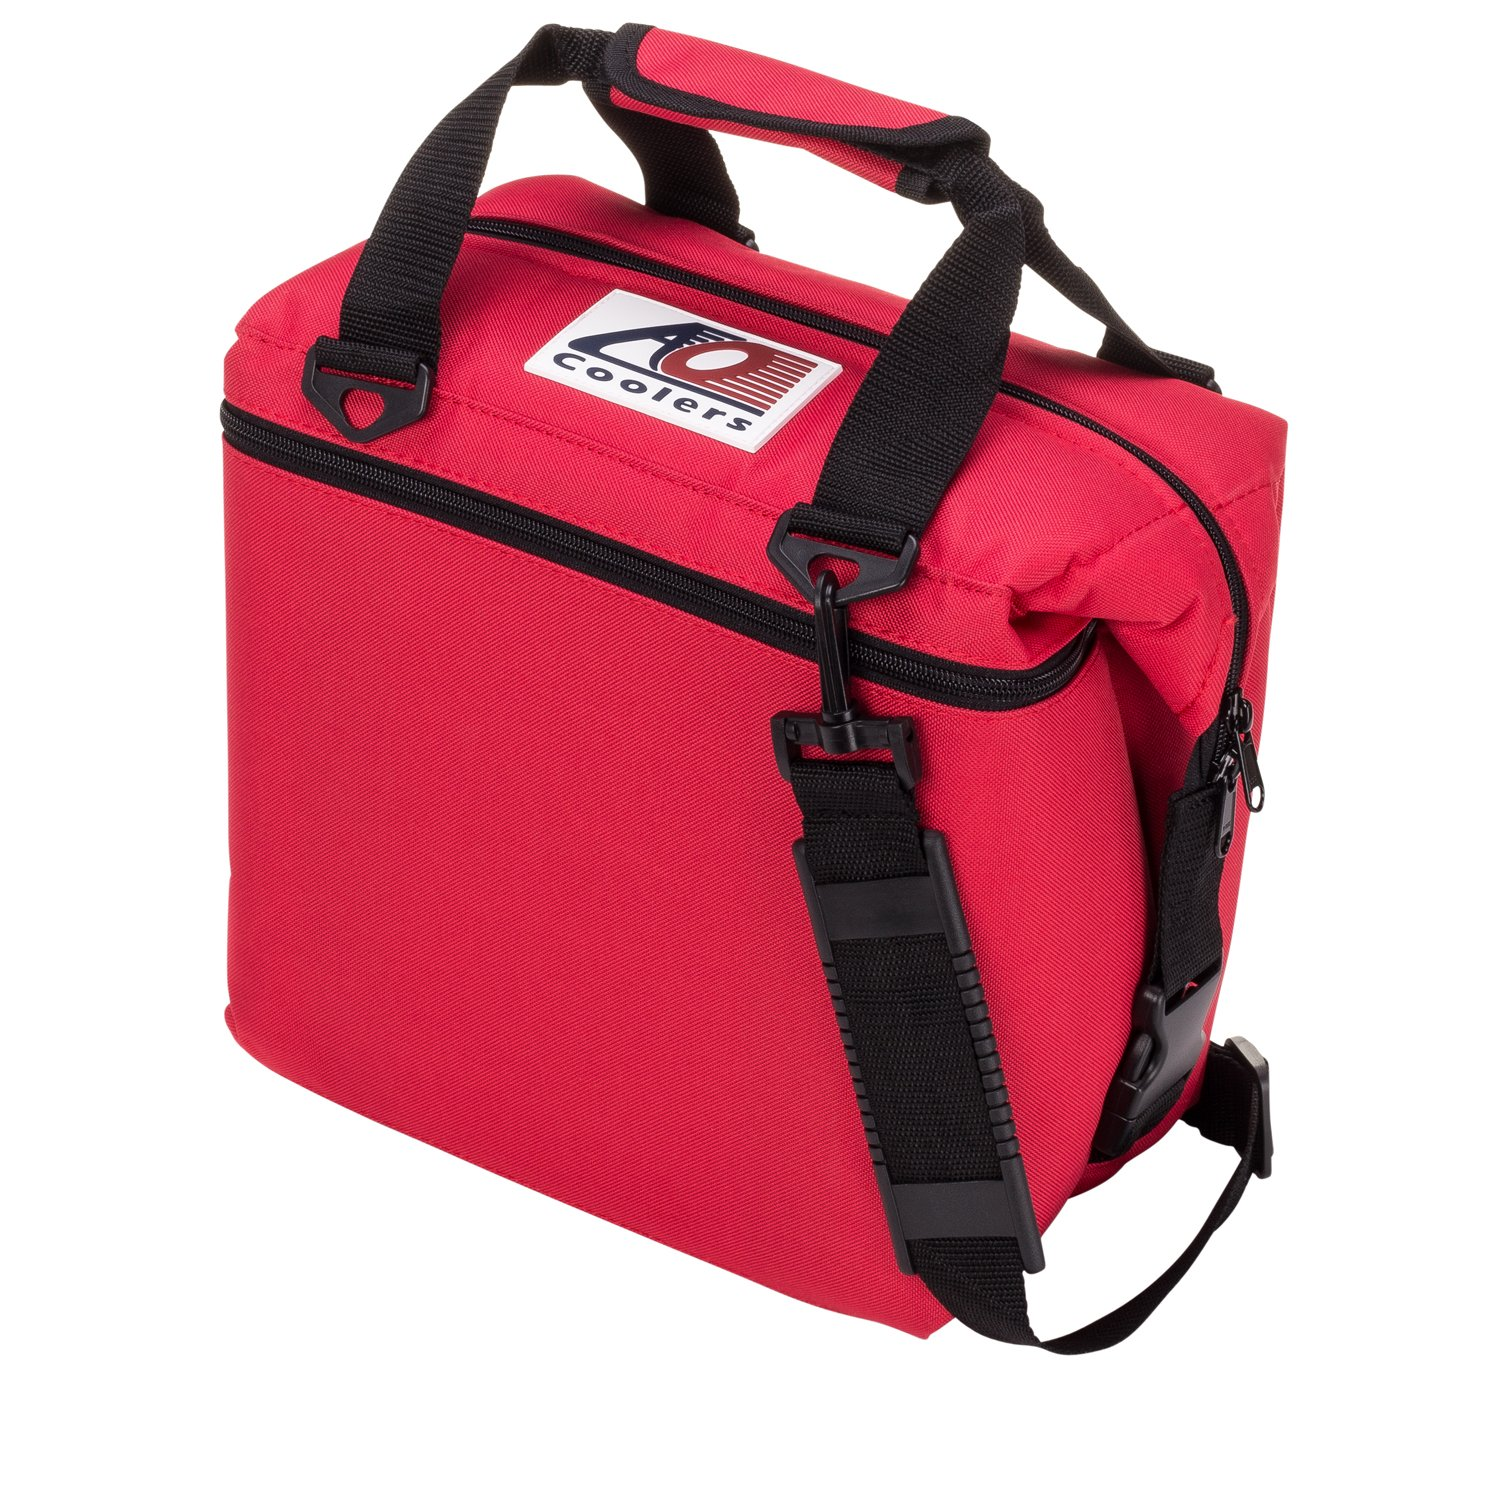 AO Coolers Canvas Soft Cooler with High-Density Insulation, Red, 12-Can